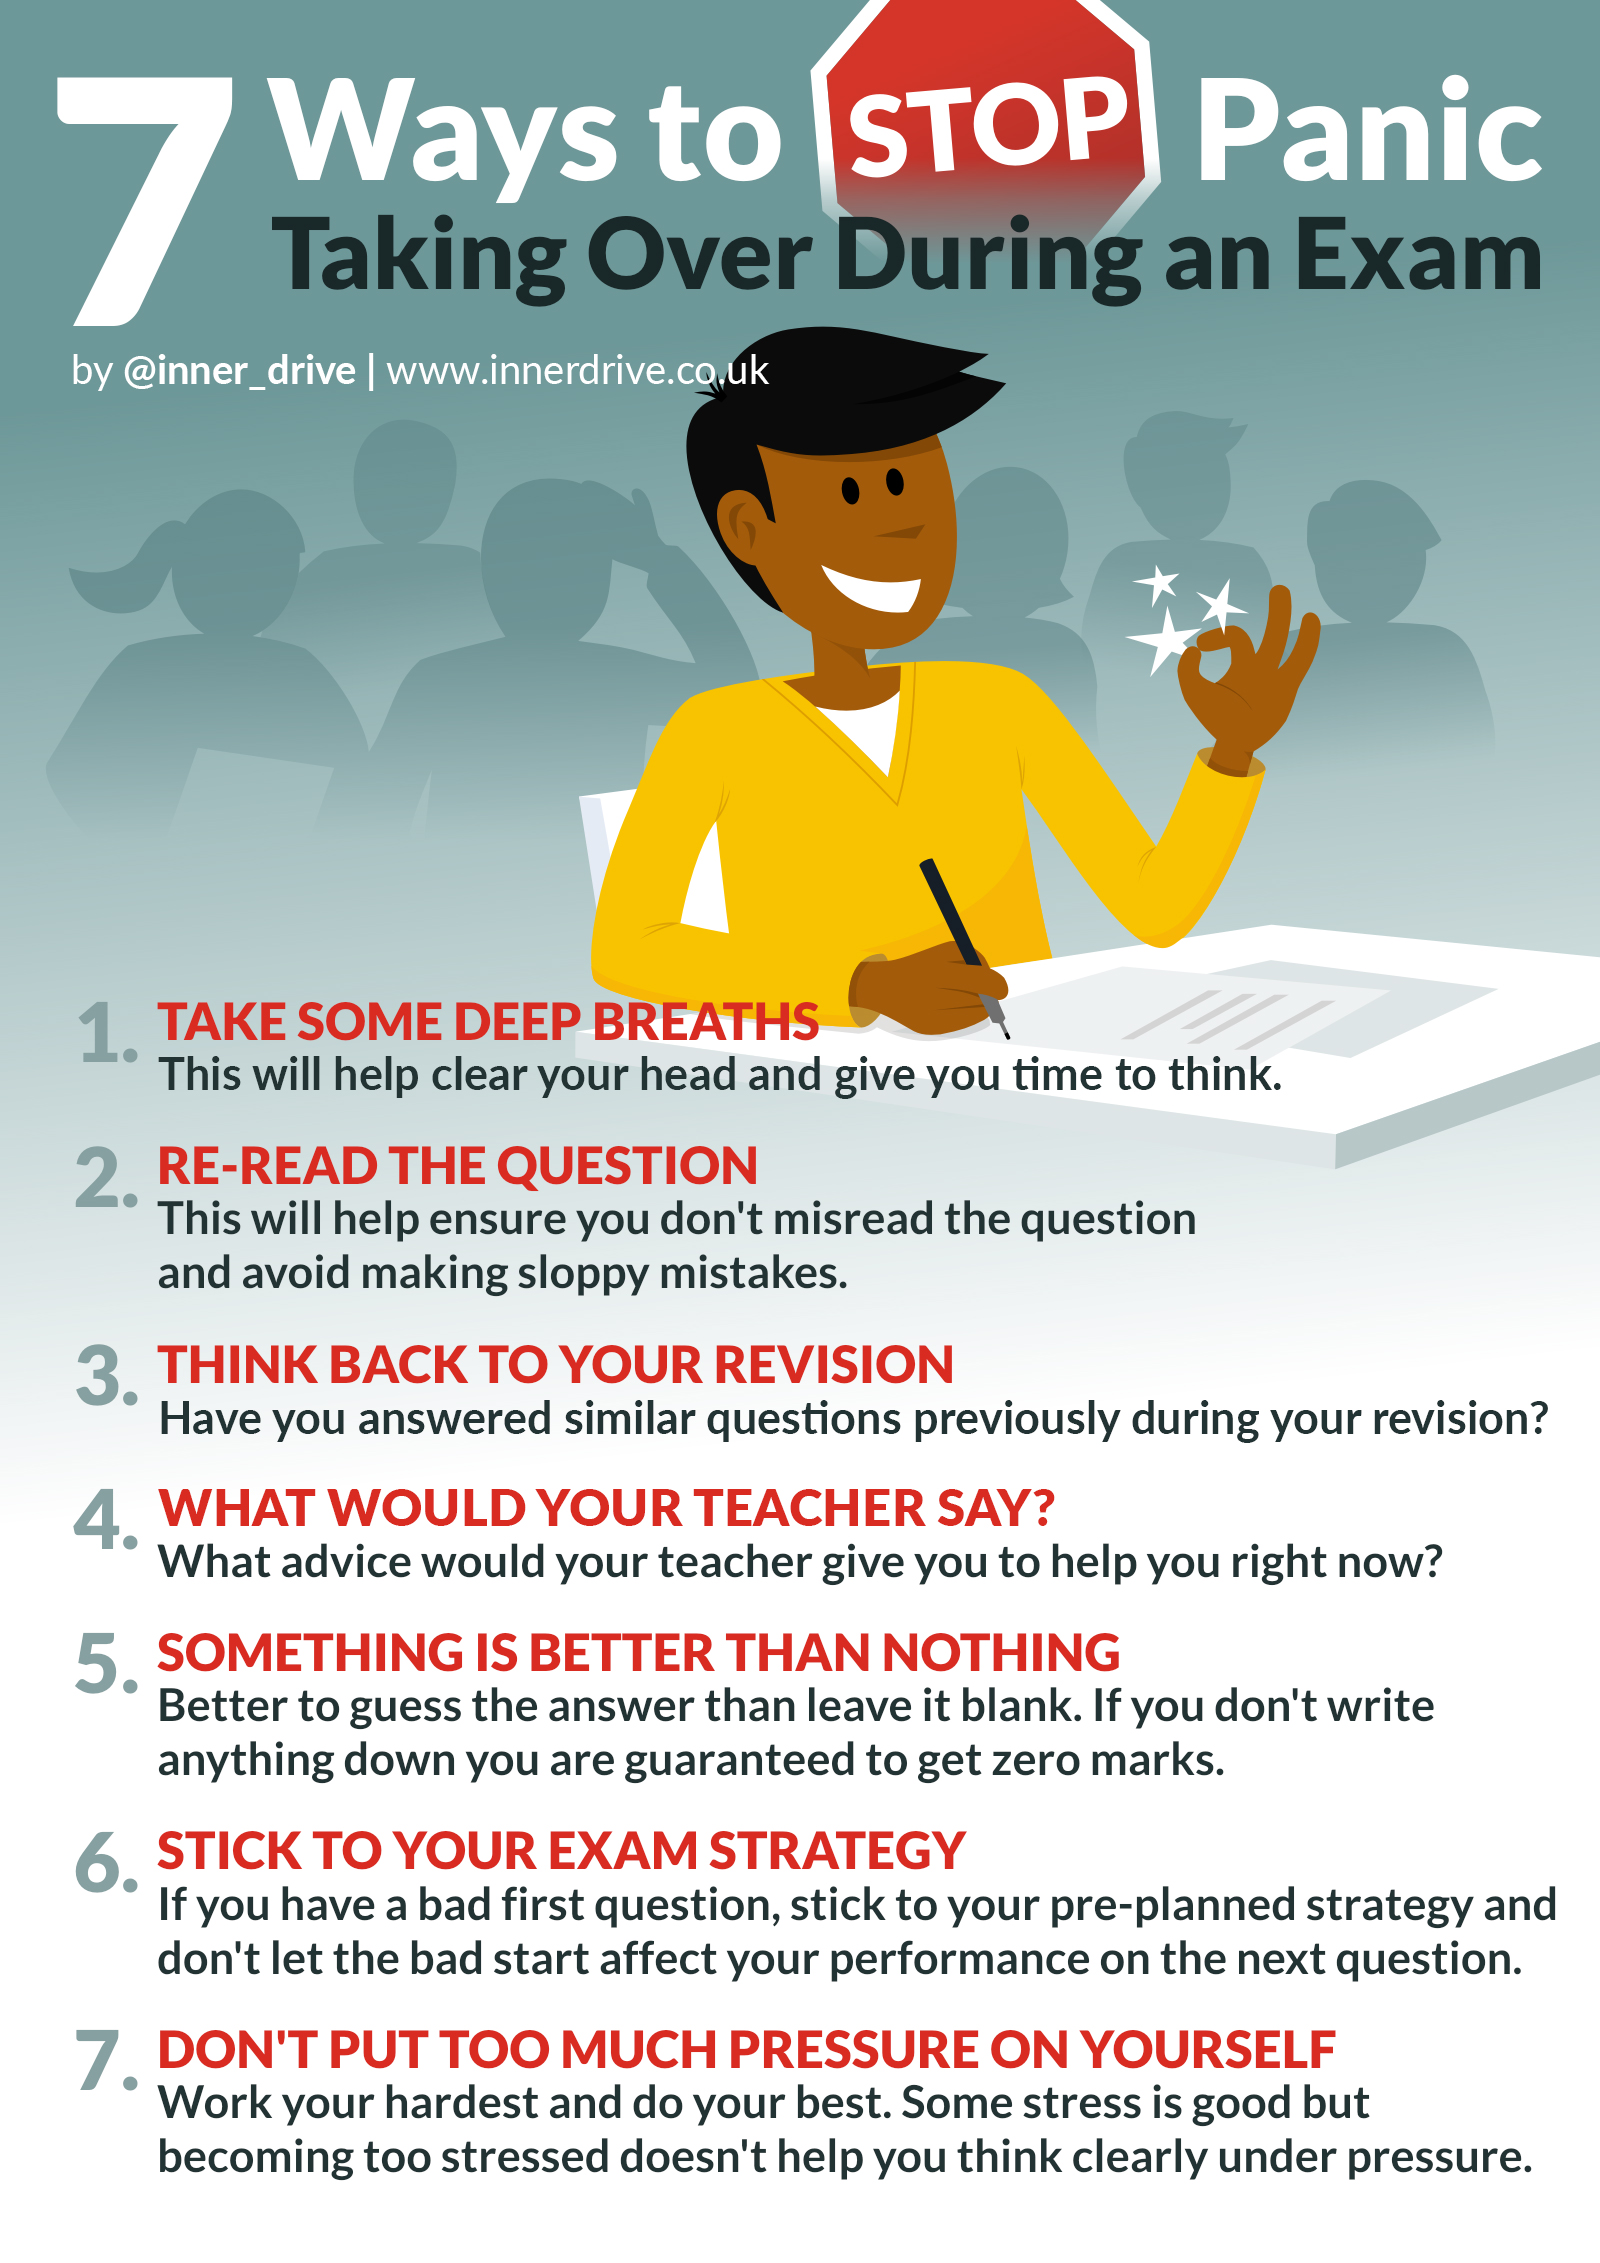 Infographic-7-ways-to-stop-panic-during-an-exam.jpg